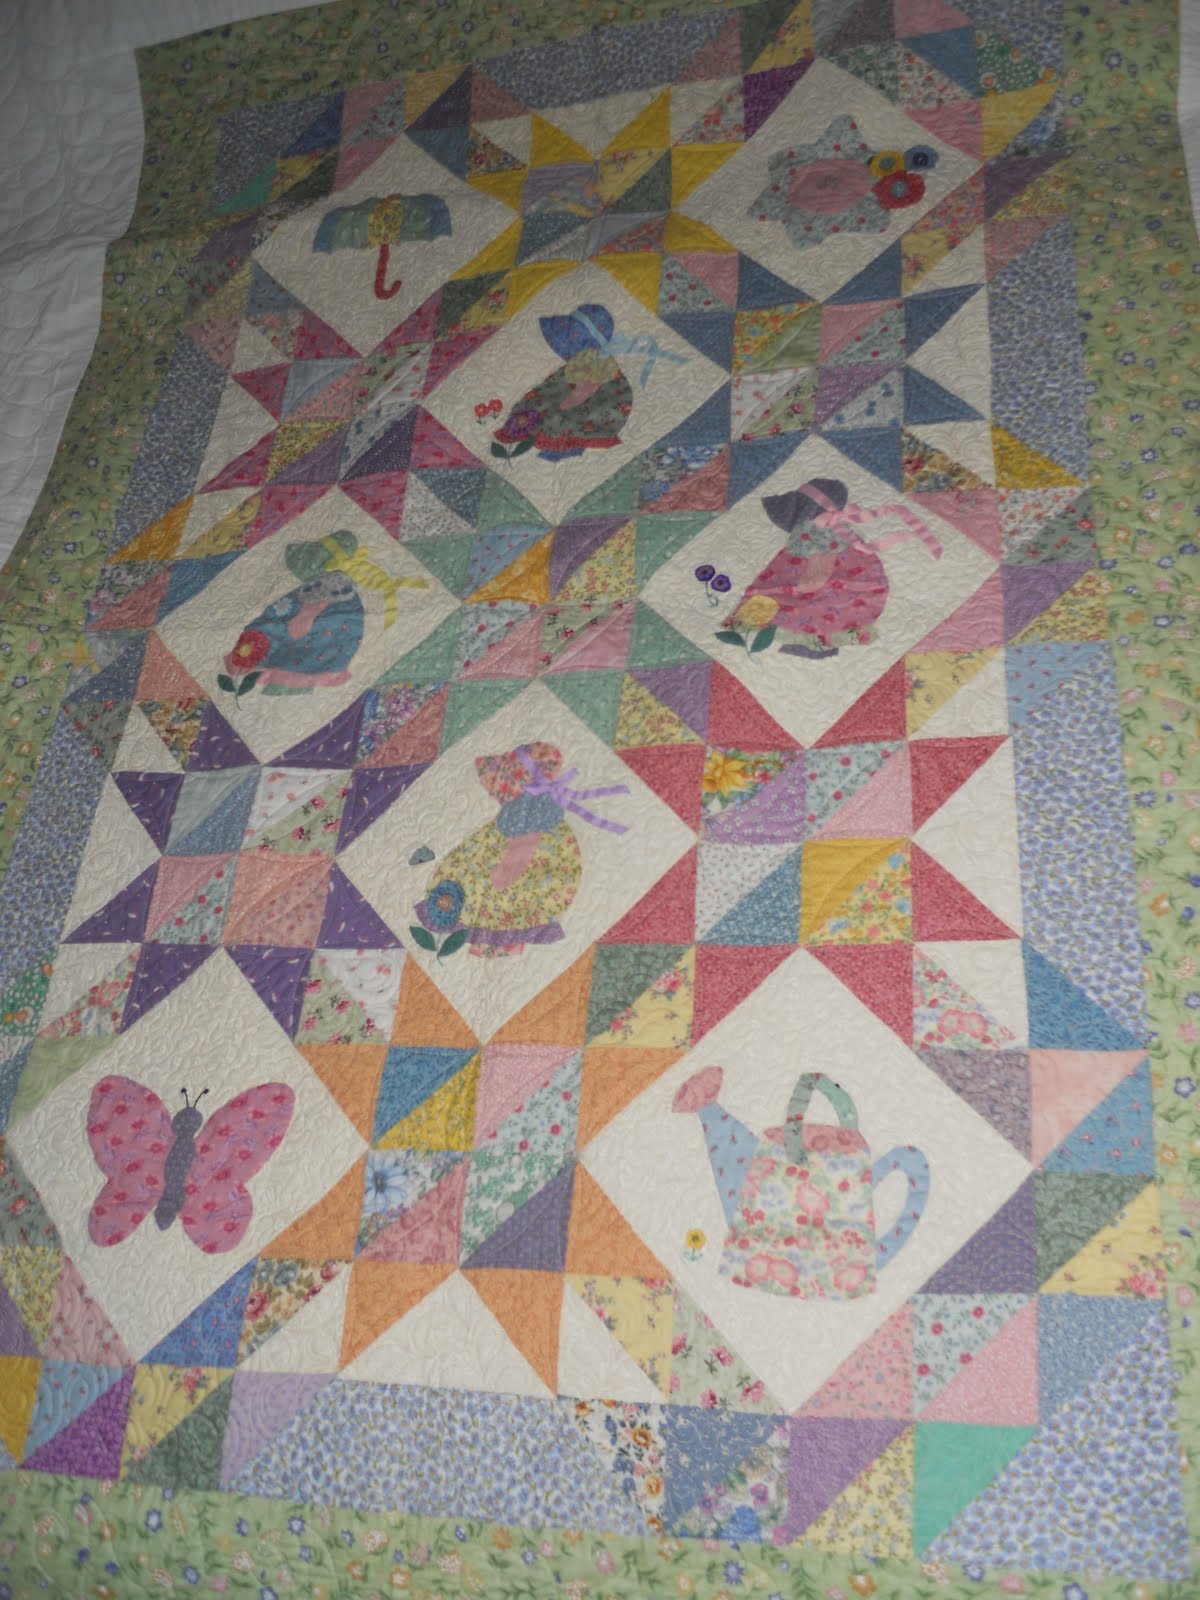 3918313541 additionally Sunbon  Sue Quilt also Neo patchwork zigzag furthermore Pd Cleopatra S Fan moreover Art Deco Pattern. on fan quilt block pattern